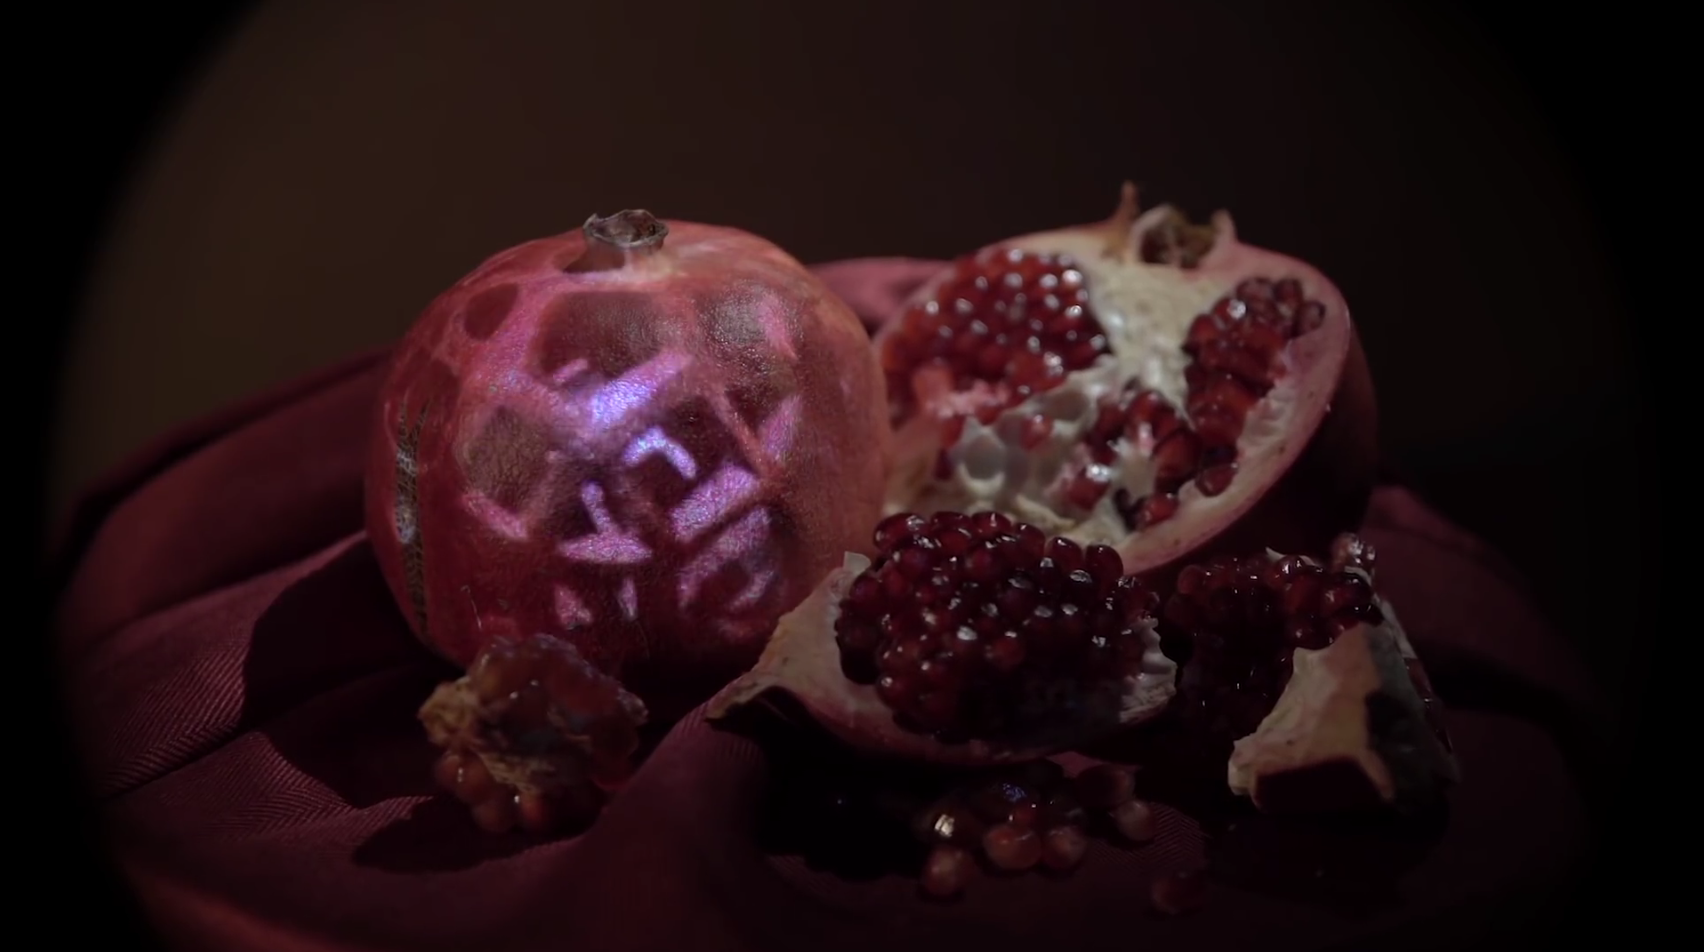 "Filmstill from, ""I Wish the Wars Were All Over."" Image of cut opened pomegranate with seeds in a dimley light room with a flickering light."